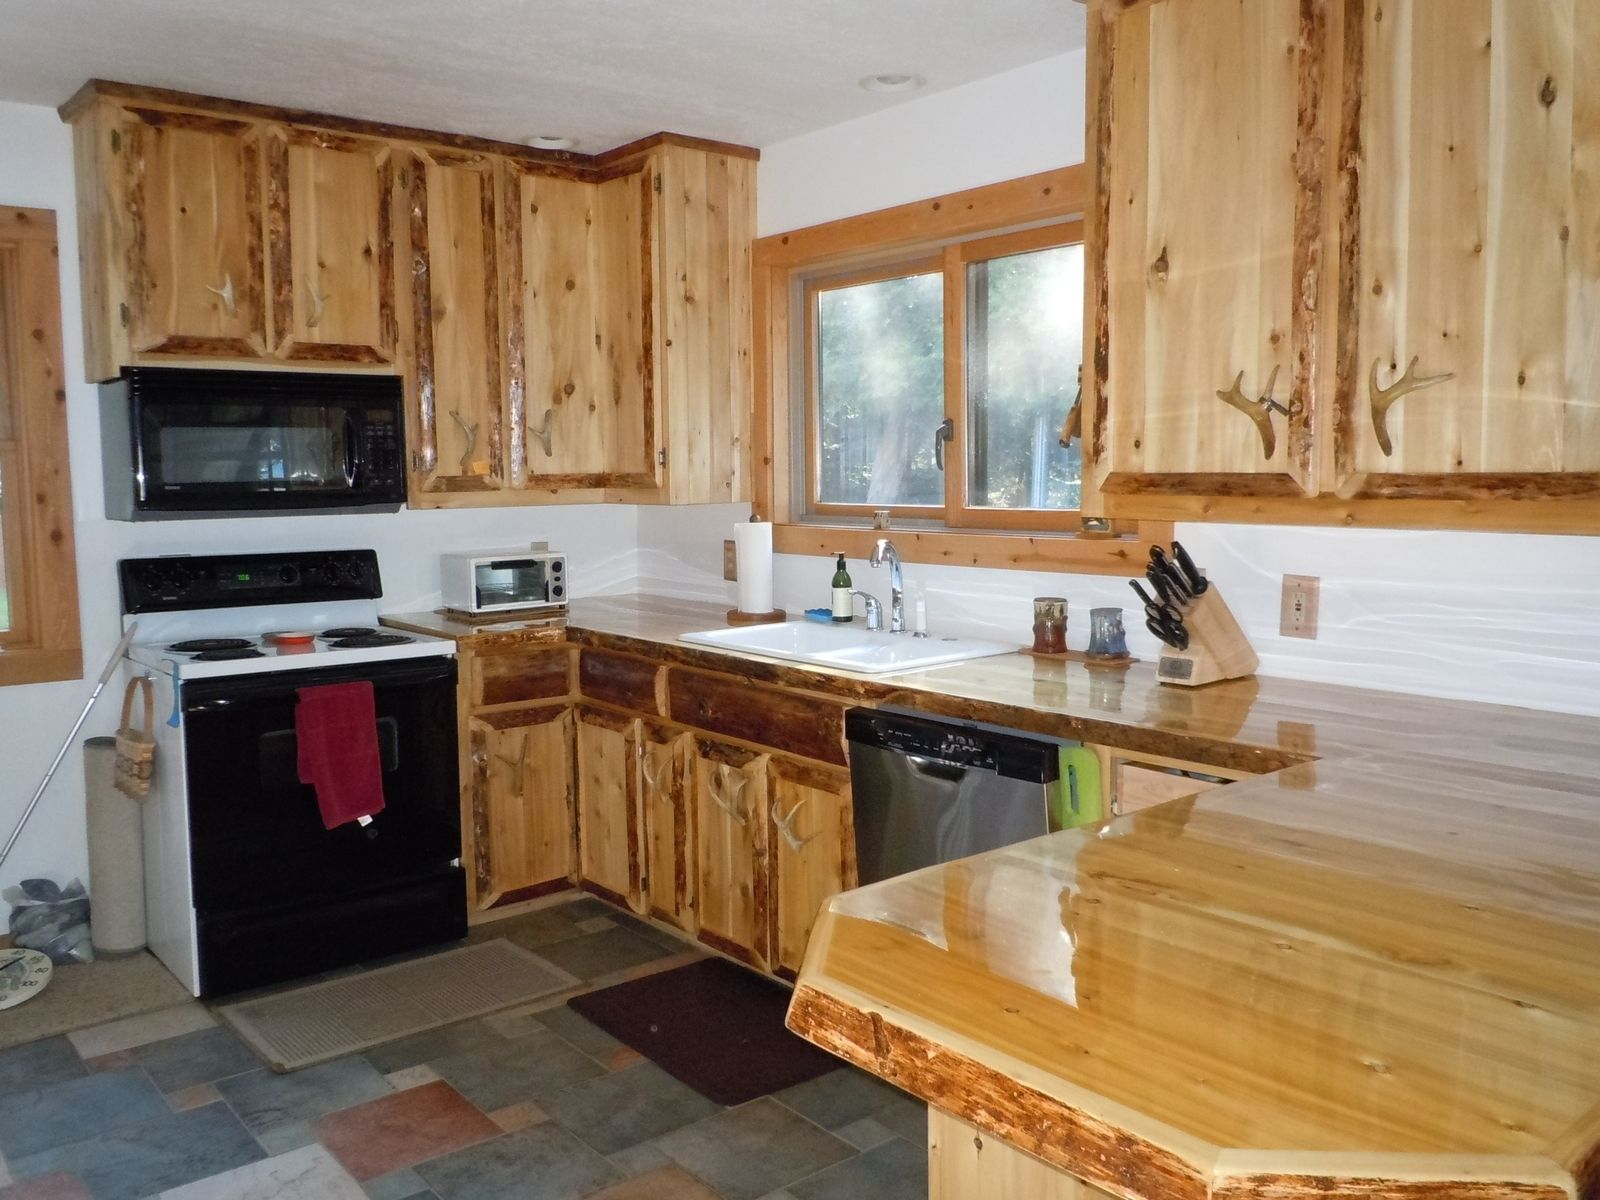 Hand crafted custom cedar kitchen cabinets by king of the forest furniture - Custom made cabinet ...